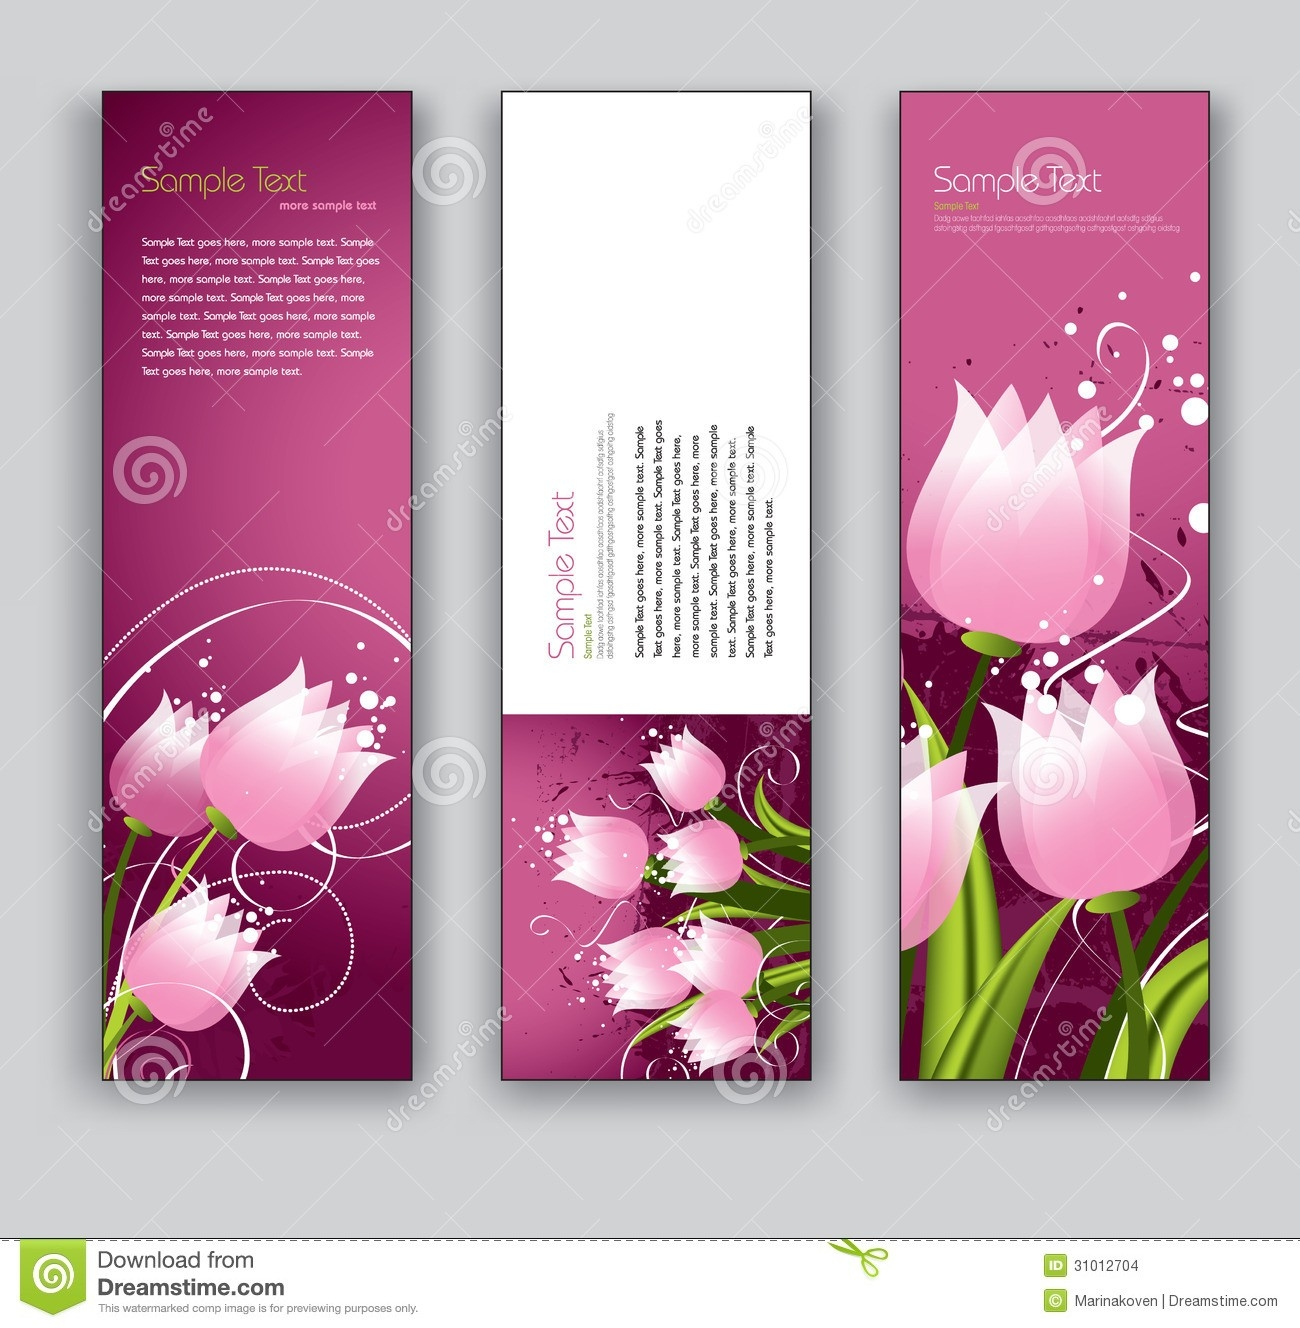 Abstract Floral Banners. Vector Eps10 Backgrounds. Stock Vector intended for Bookmark Backgrounds Free Download 27170